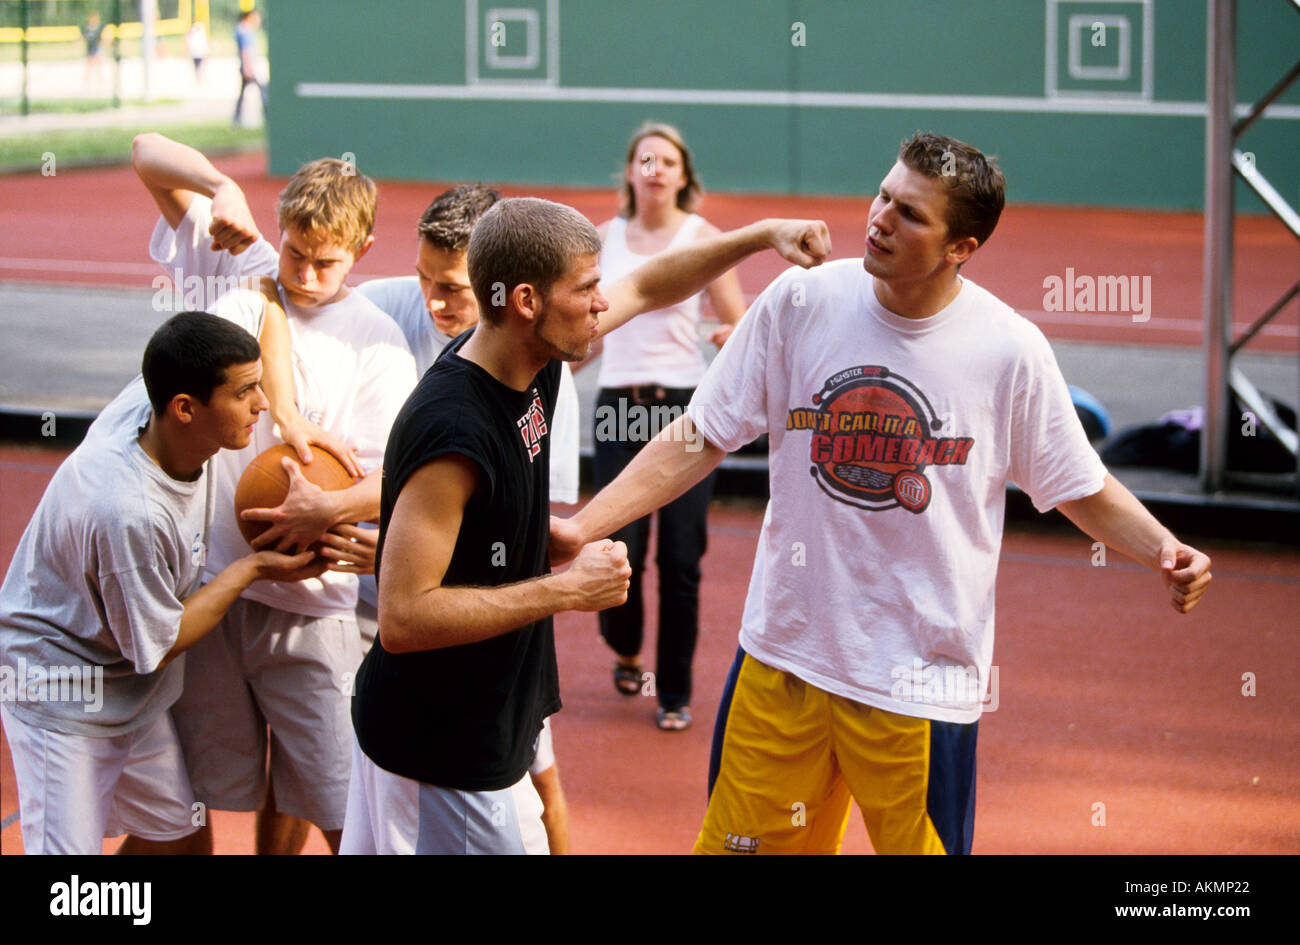 Germany Free time Young men playing basketball confrontation  - Stock Image